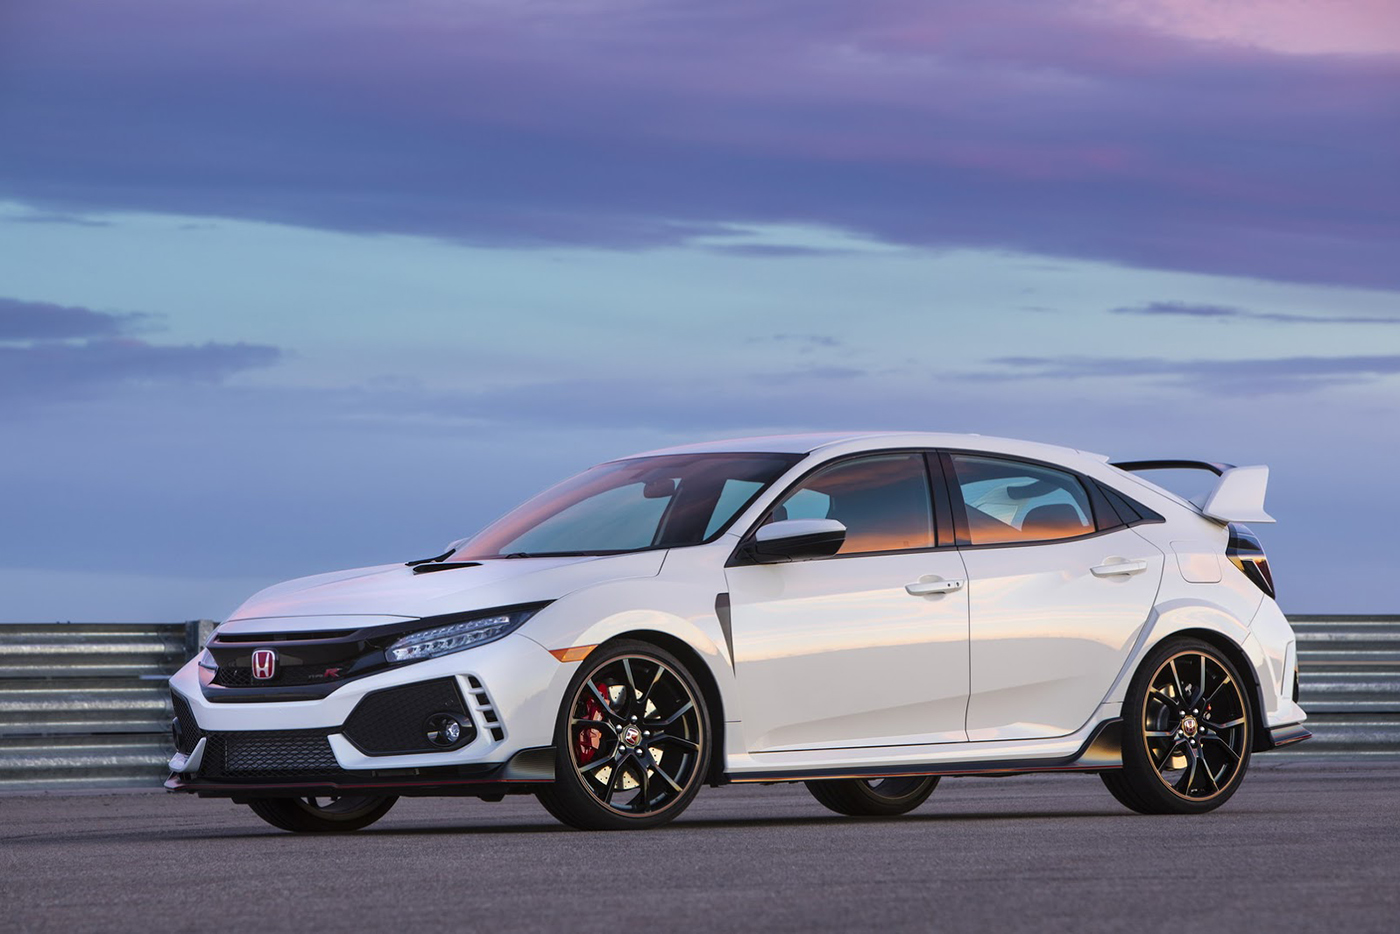 honda-civic-type-r-2018-6.jpg